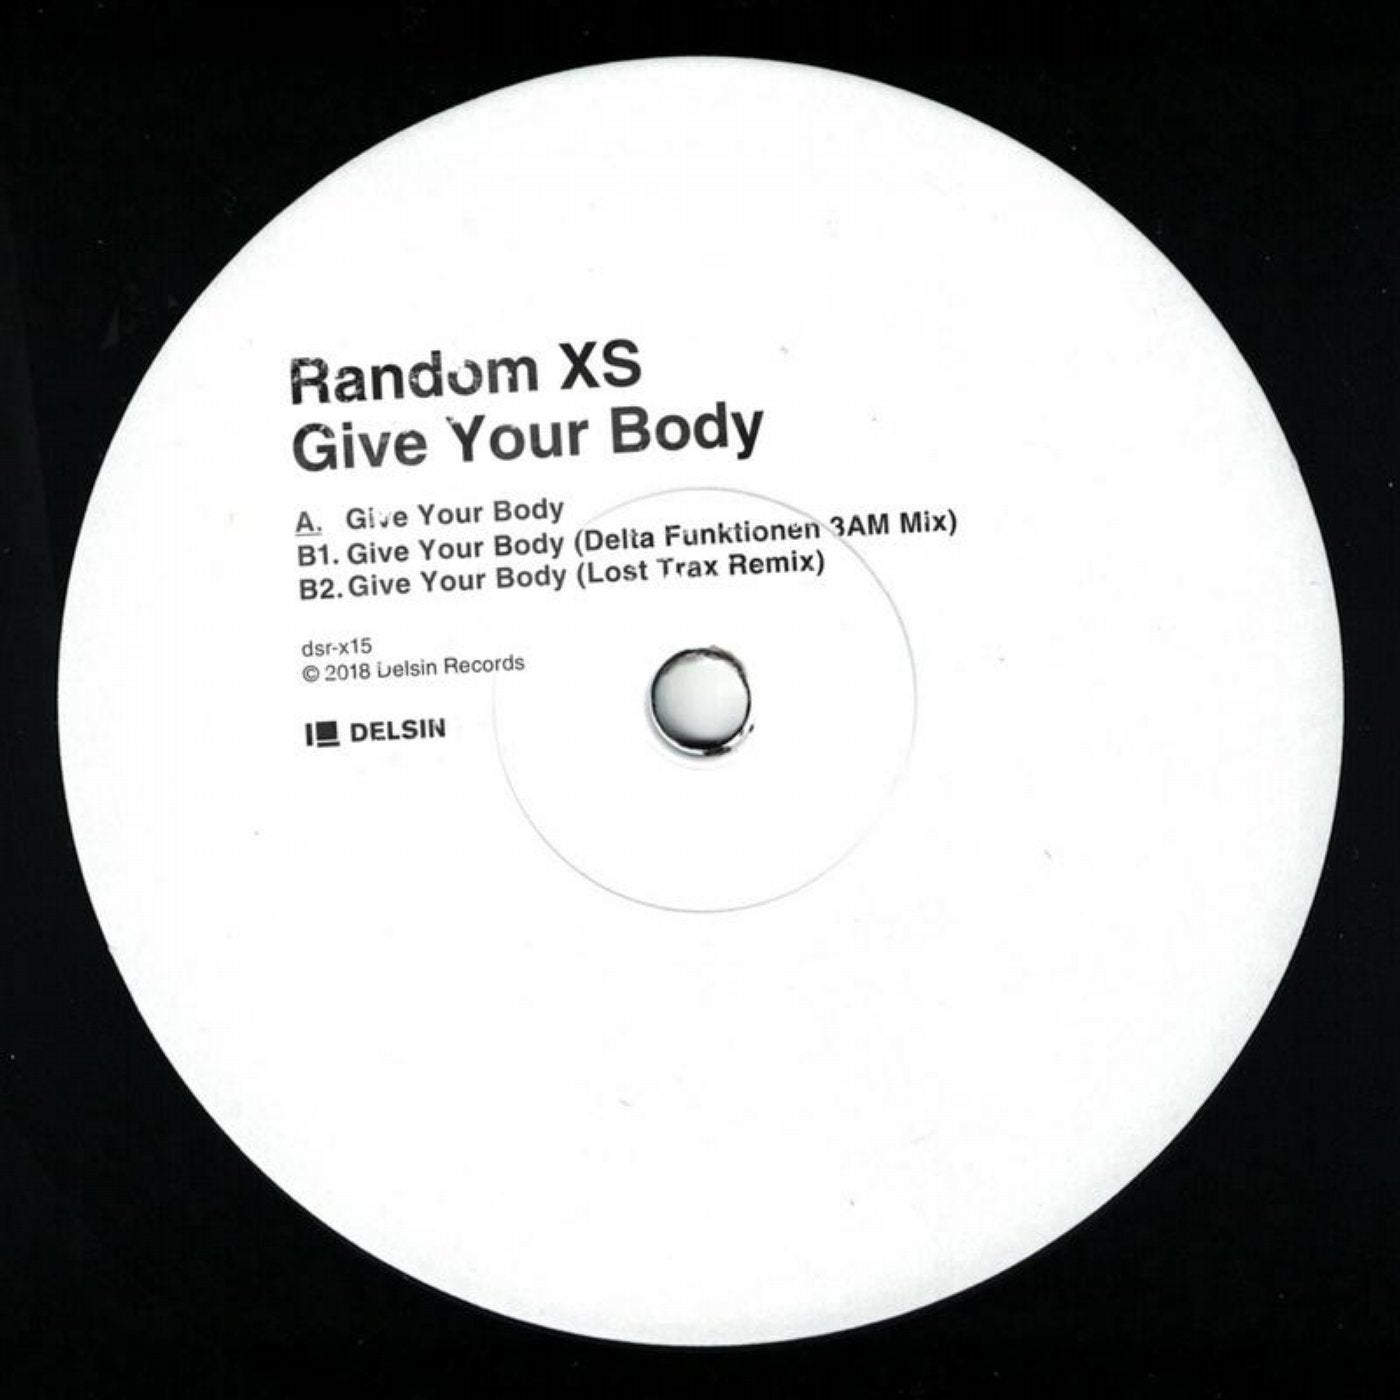 Give Your Body (Delta Funktionen 3AM Mix)